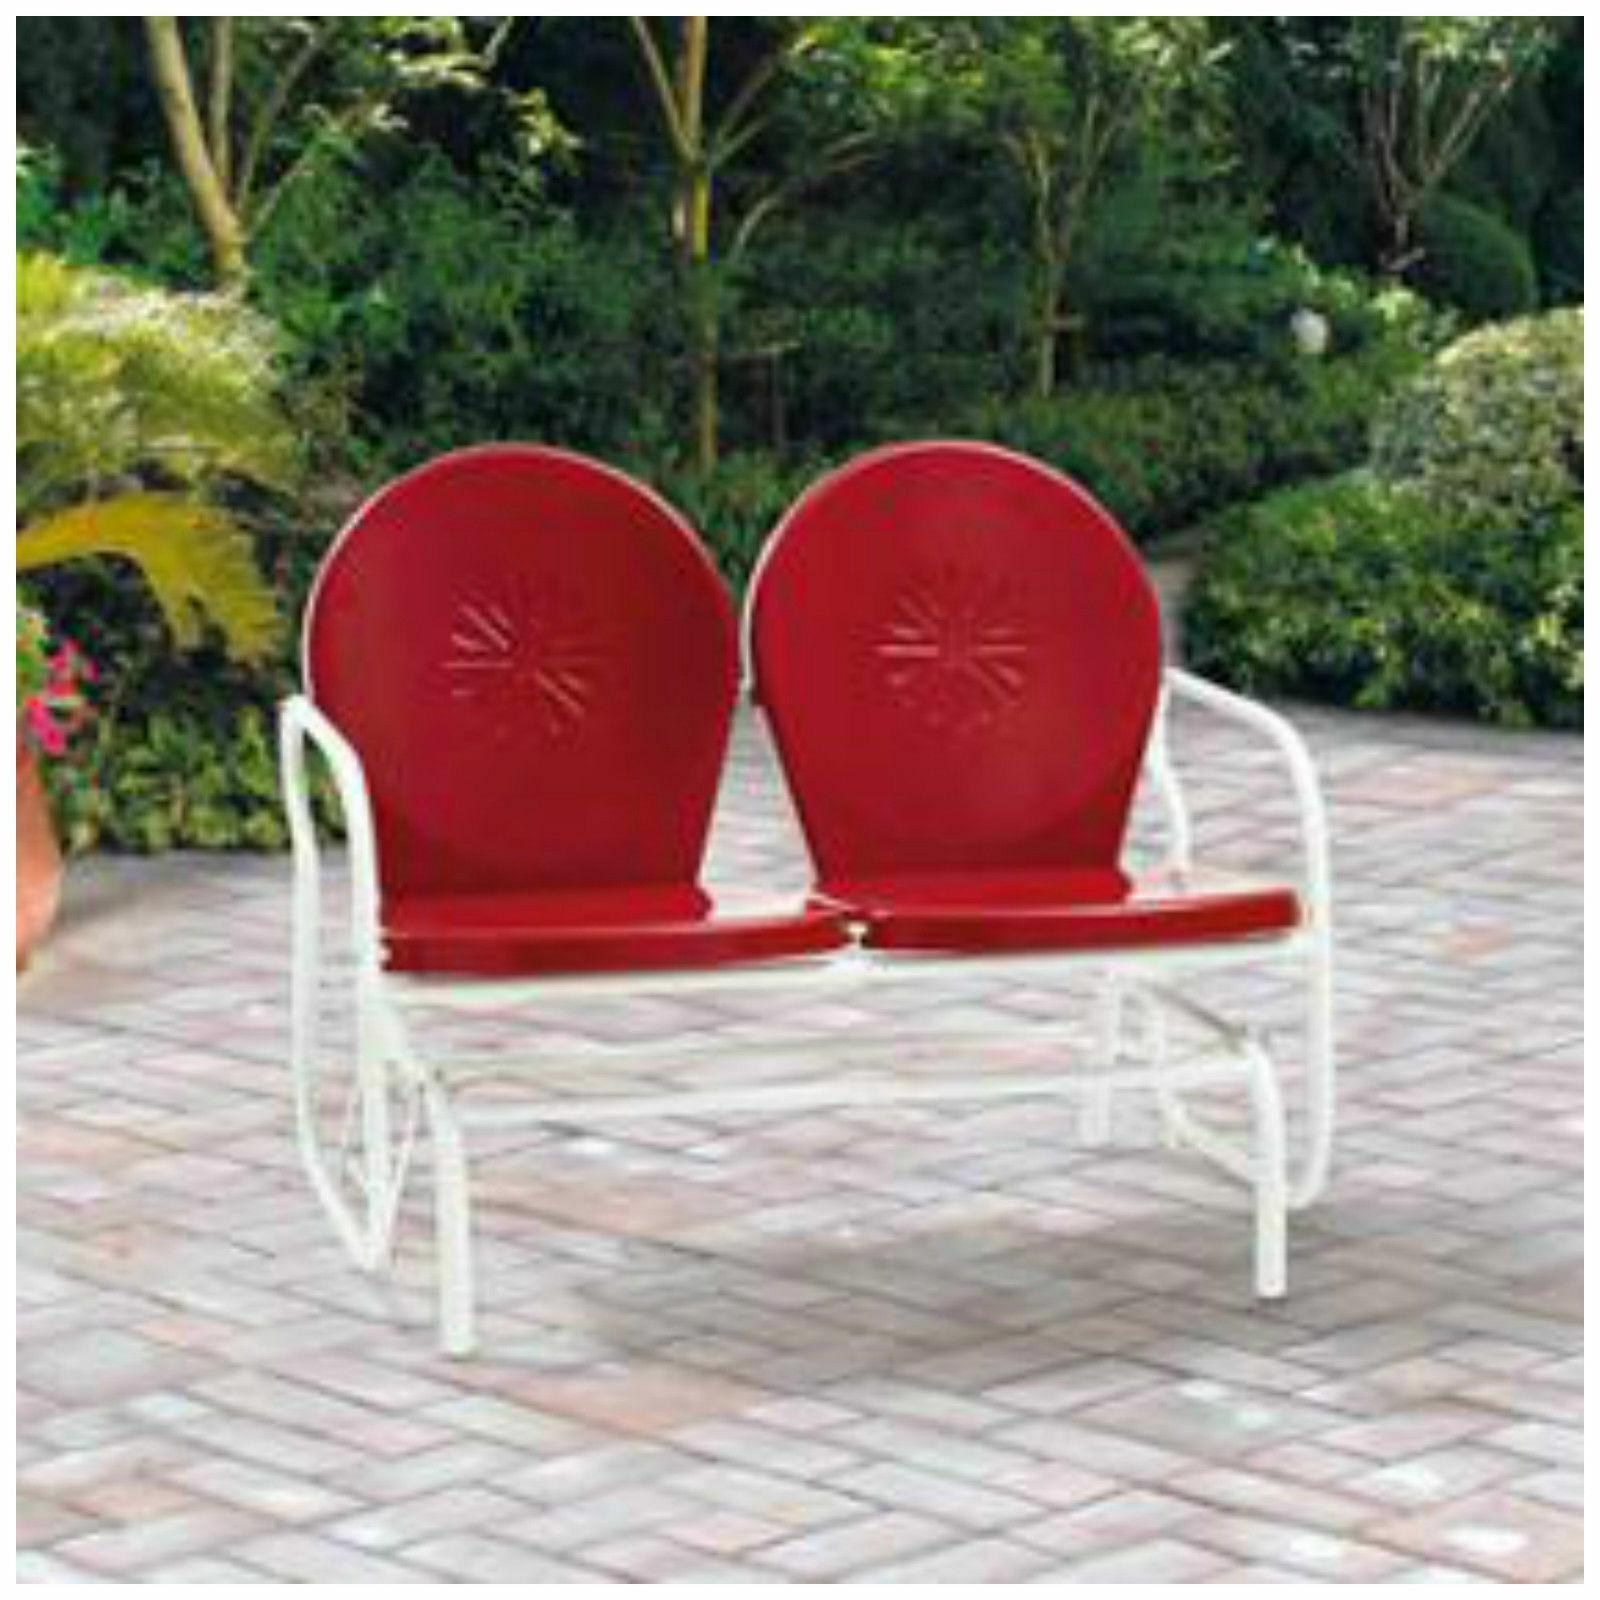 Outdoor Bench Glider Swing Seat Patio Garden Furniture Porch